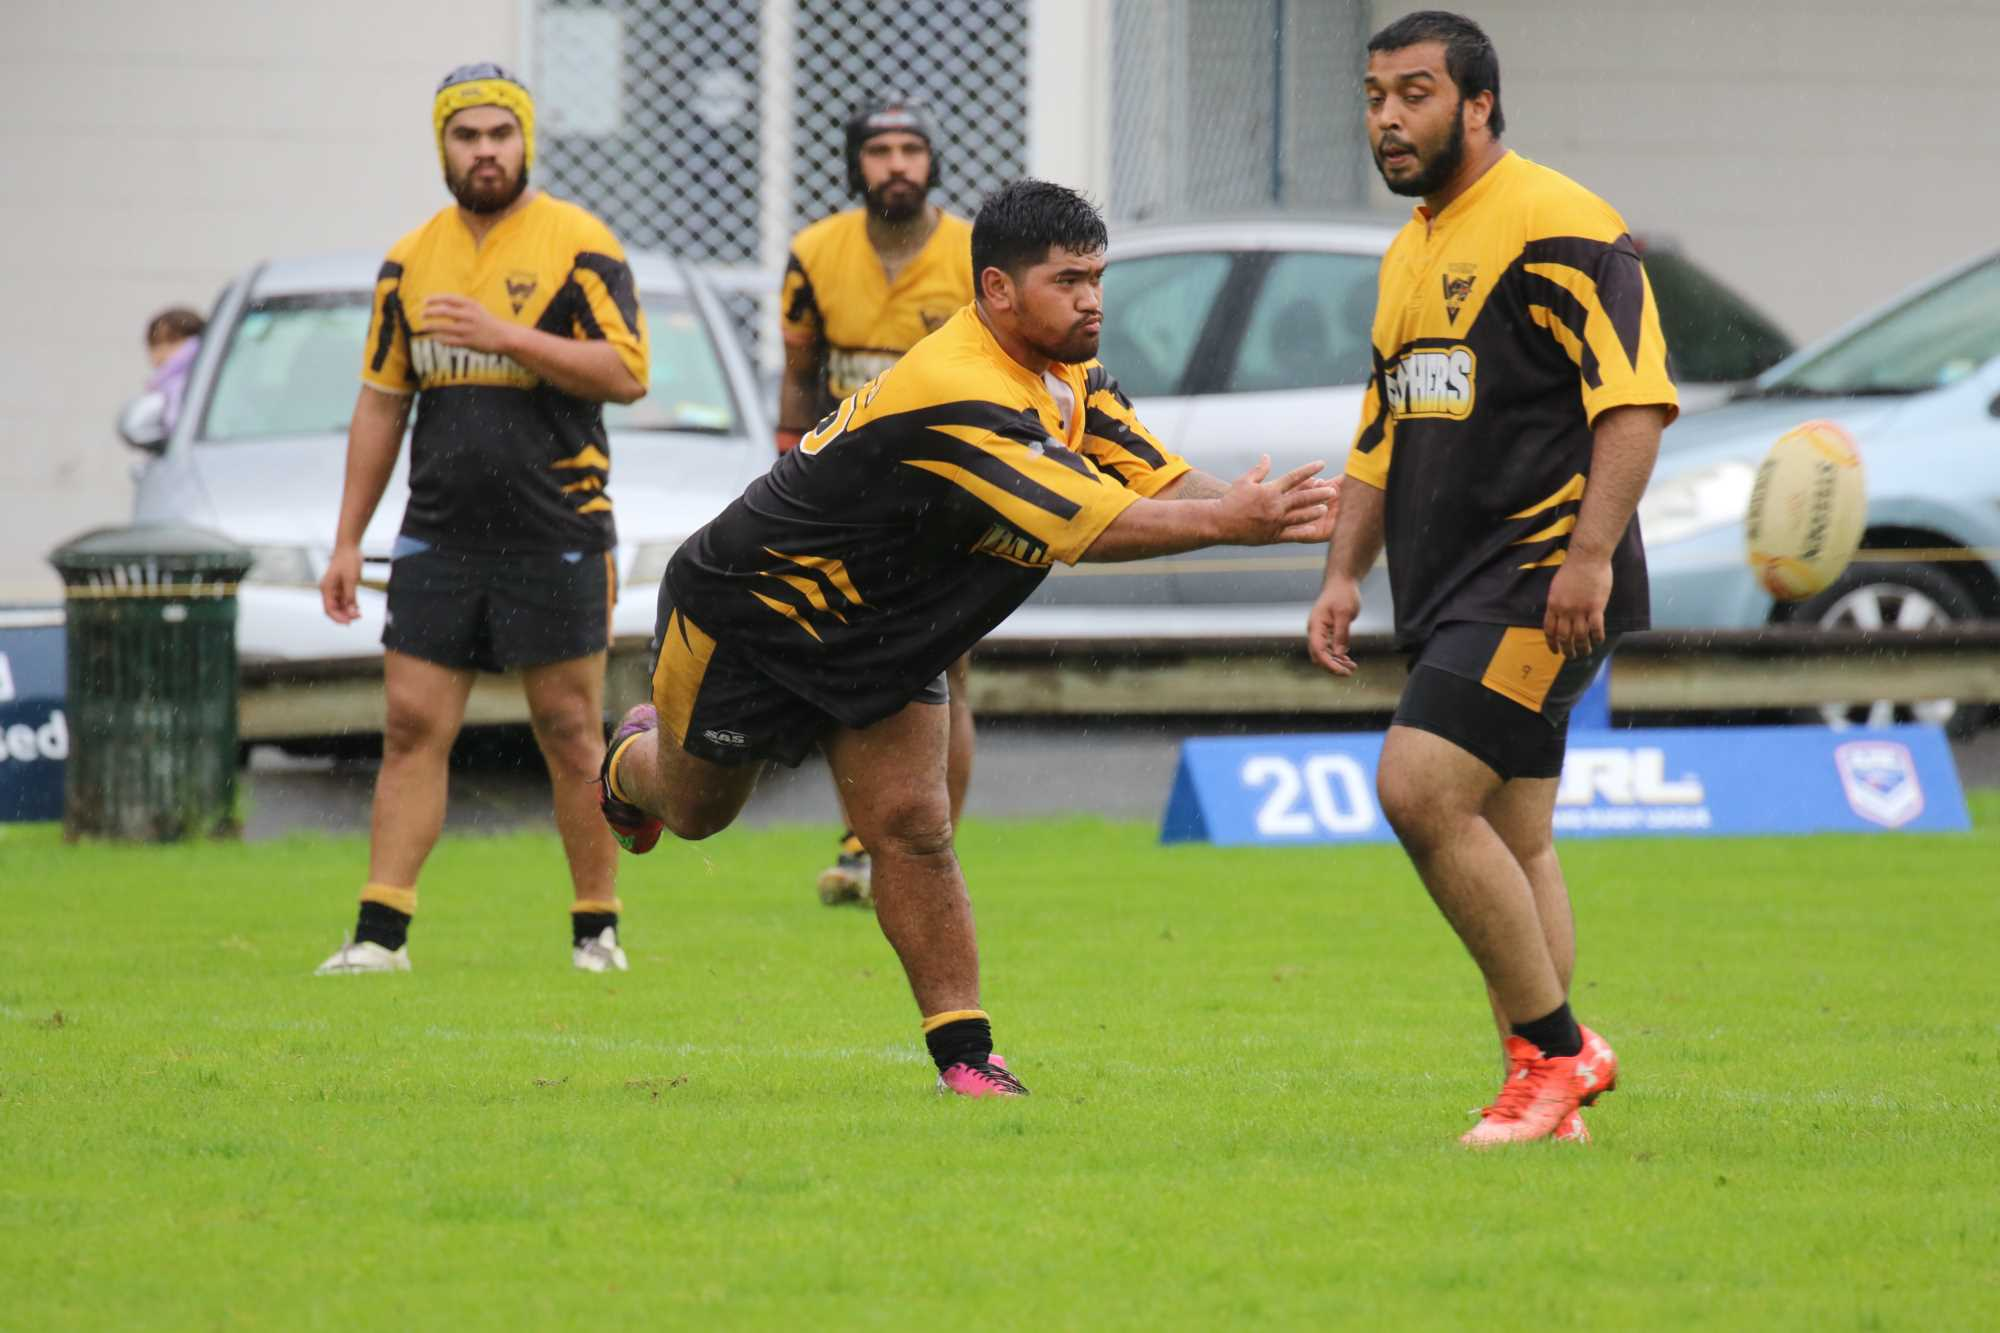 Papatoetoe Panthers to face Waitemata Seagulls in 2021 Sharman Cup Grand Final